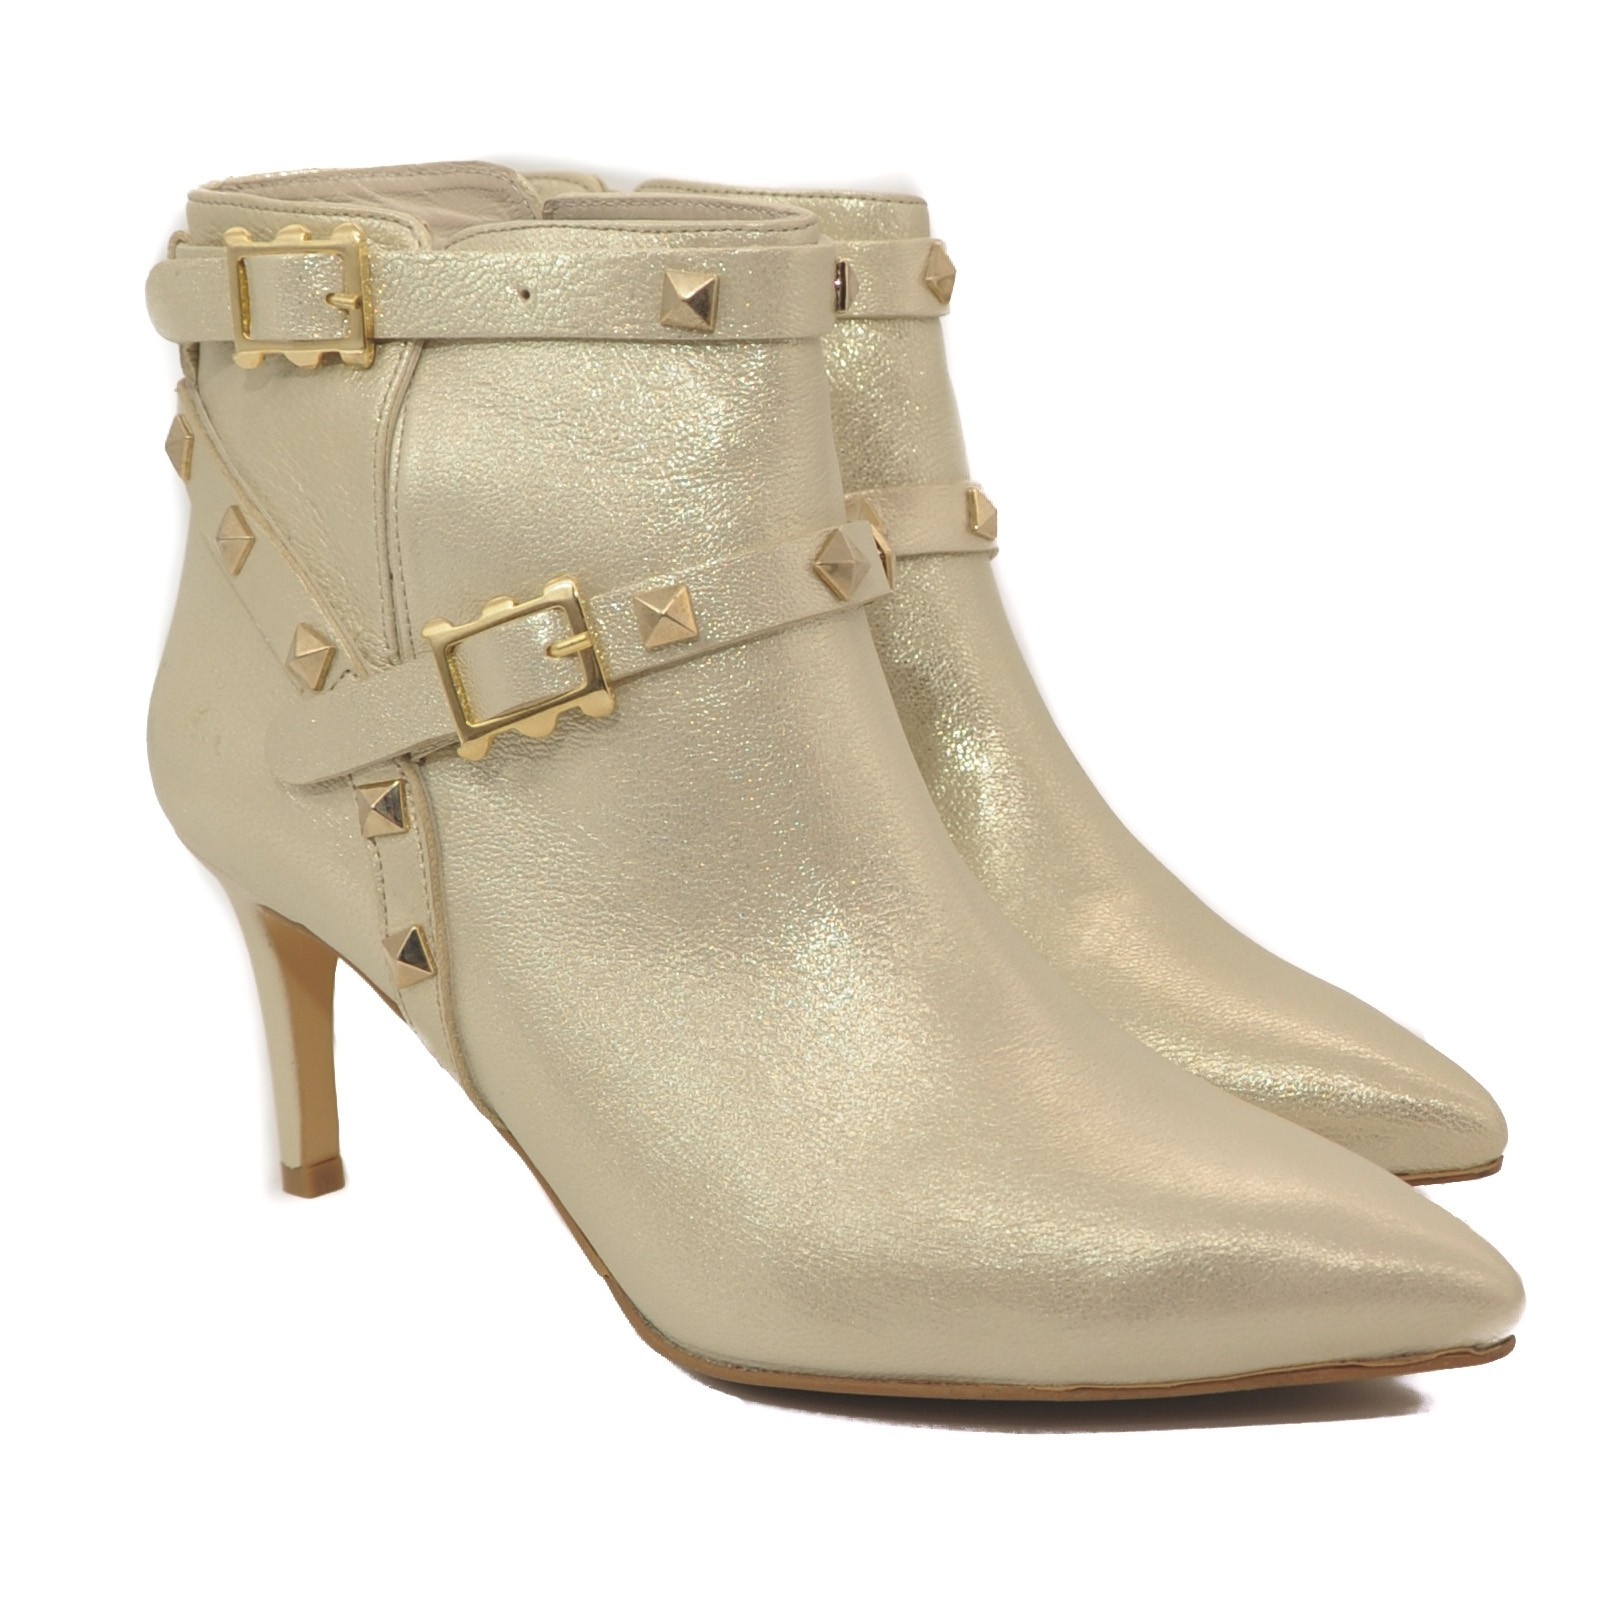 Leather Stud Ankle Boots with Double Straps and High Heels